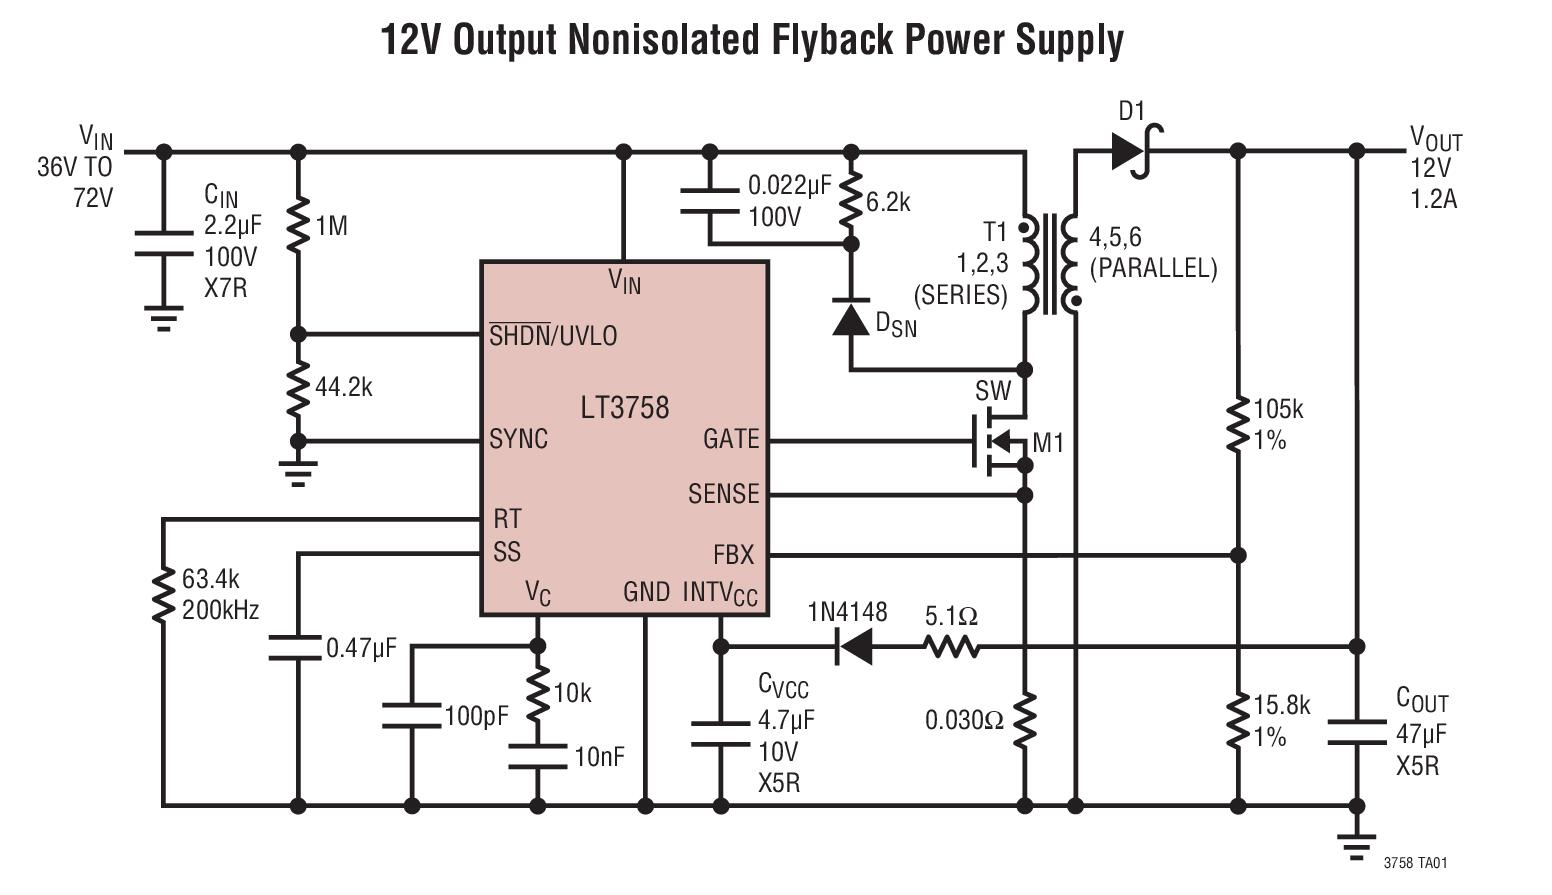 Lt3758emse Details Analog Devices Datasheets 0 12v Power Supply Circuit Diagram Reference Designs